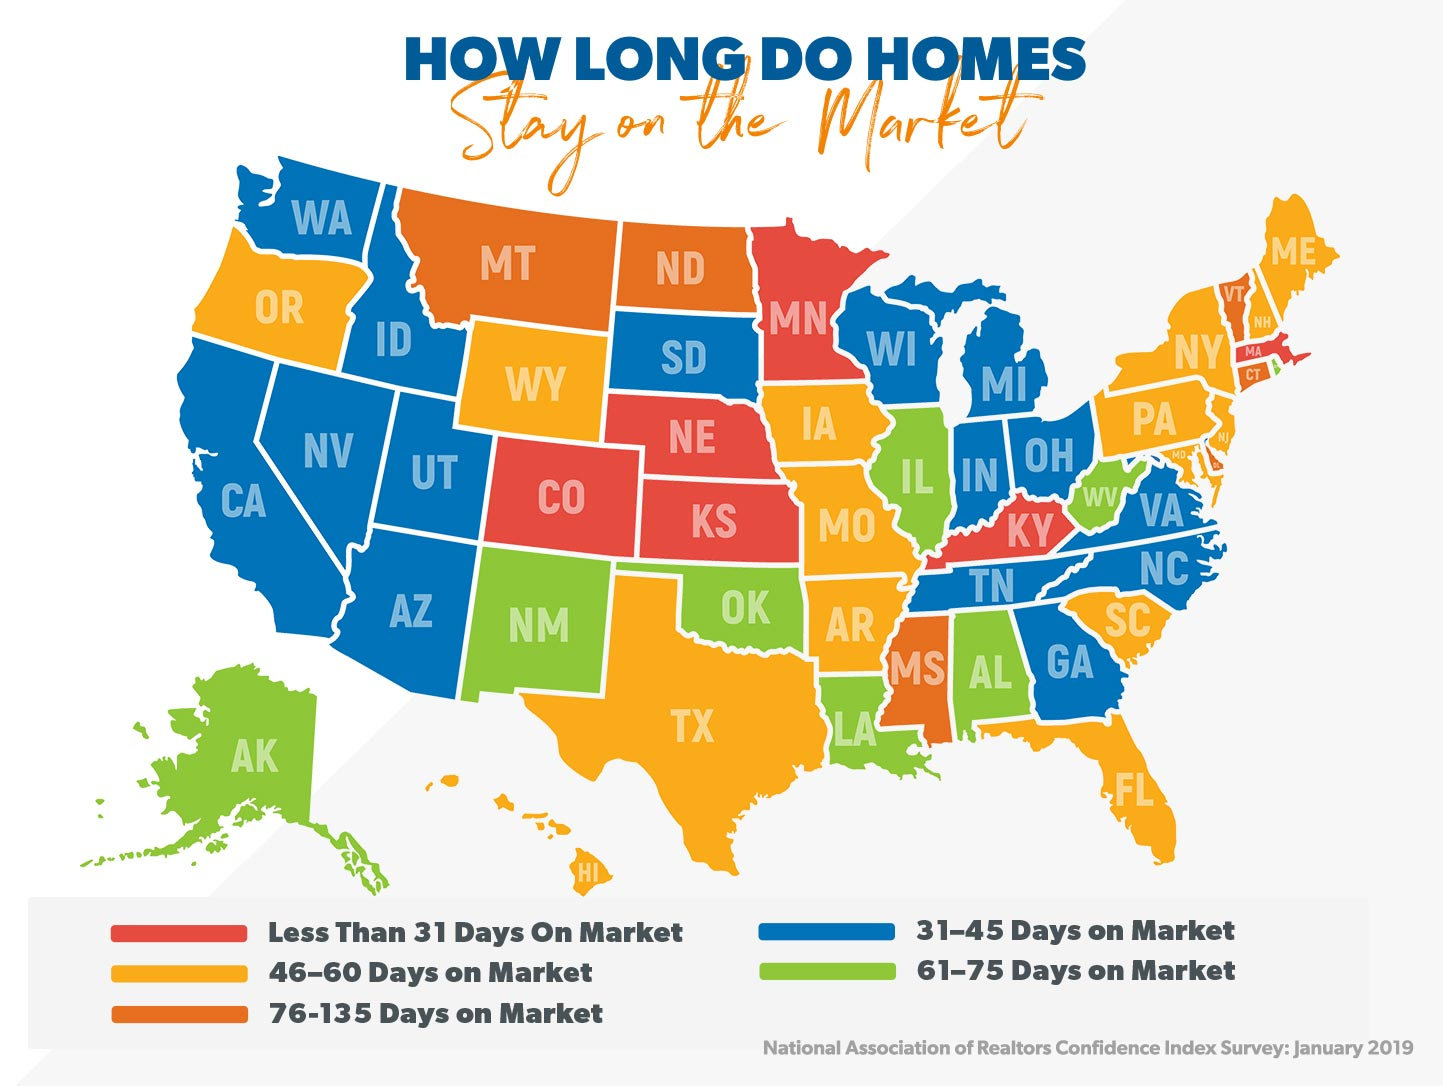 Here's a state by state breakdown of how fast homes are selling